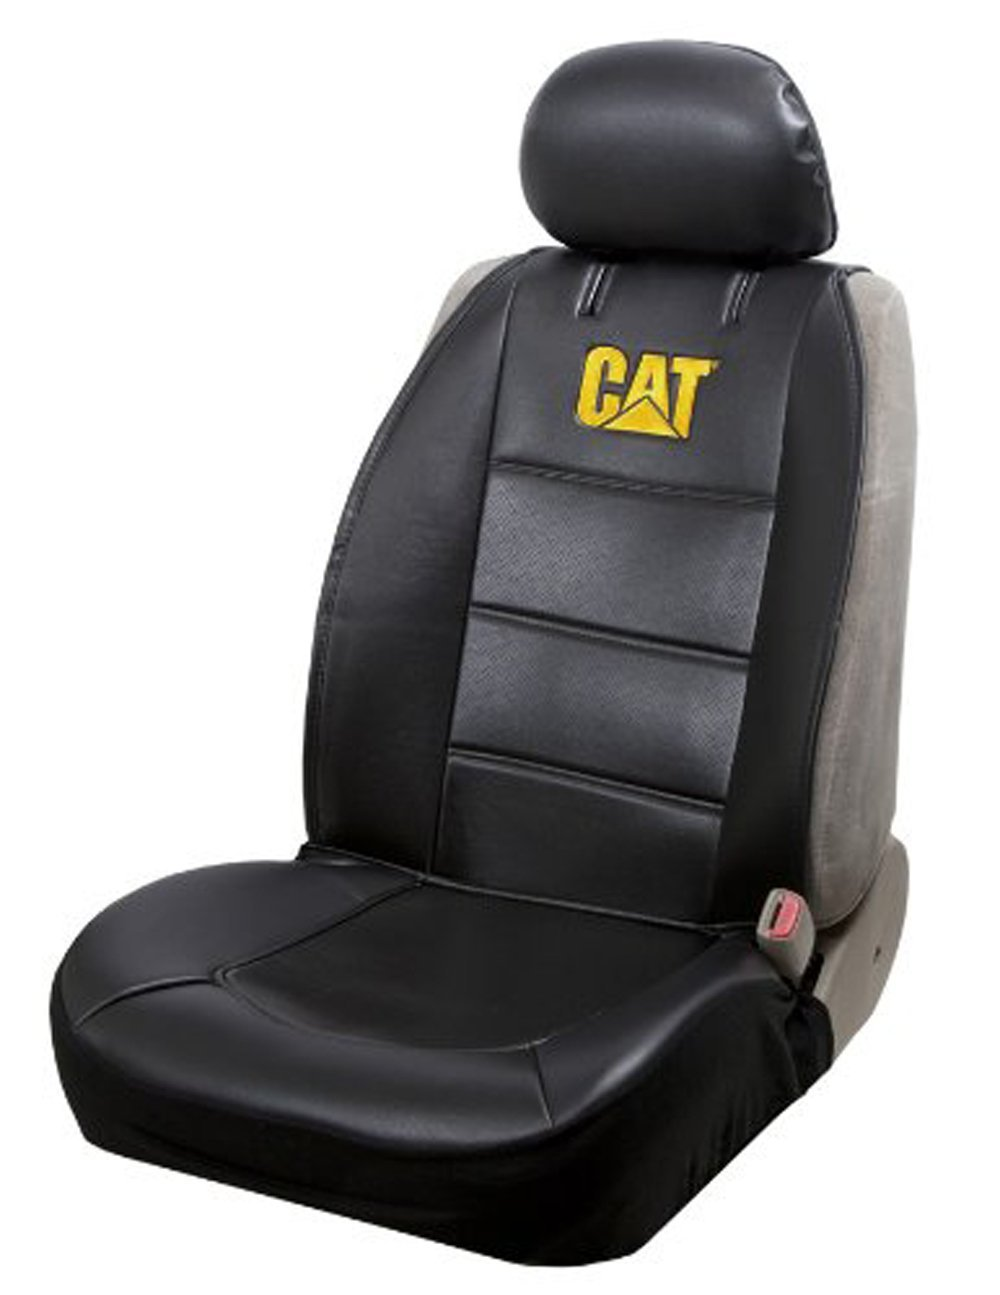 Trucker Seats - Trucker Seating - Seat Cushions - Maging Back ... on